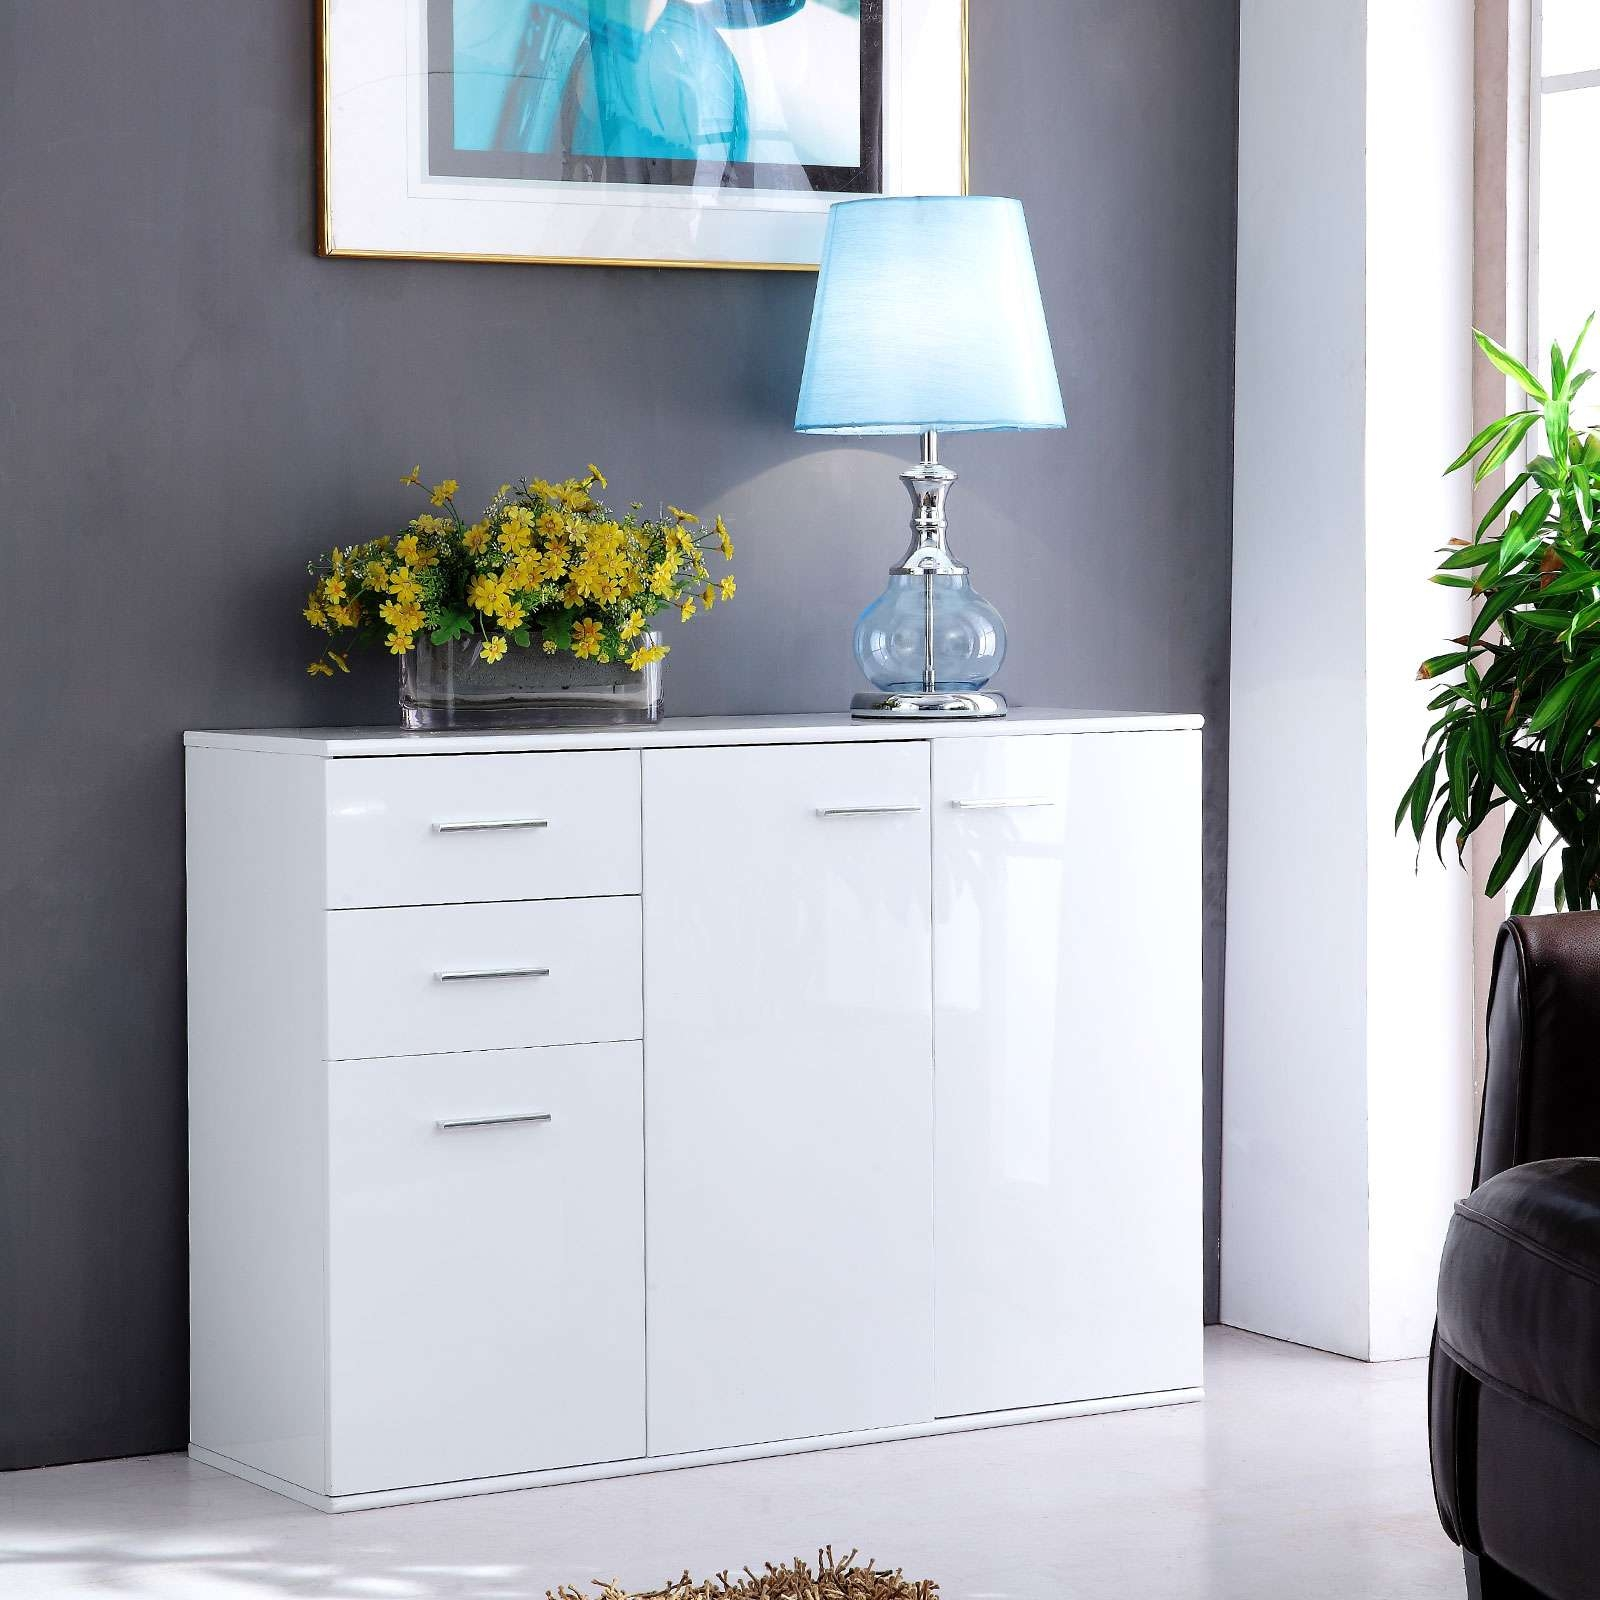 Sideboard Buffet Cabinet High Gloss White Storage Cupboard Unit 2 Intended For White Sideboards Cabinets (View 20 of 20)